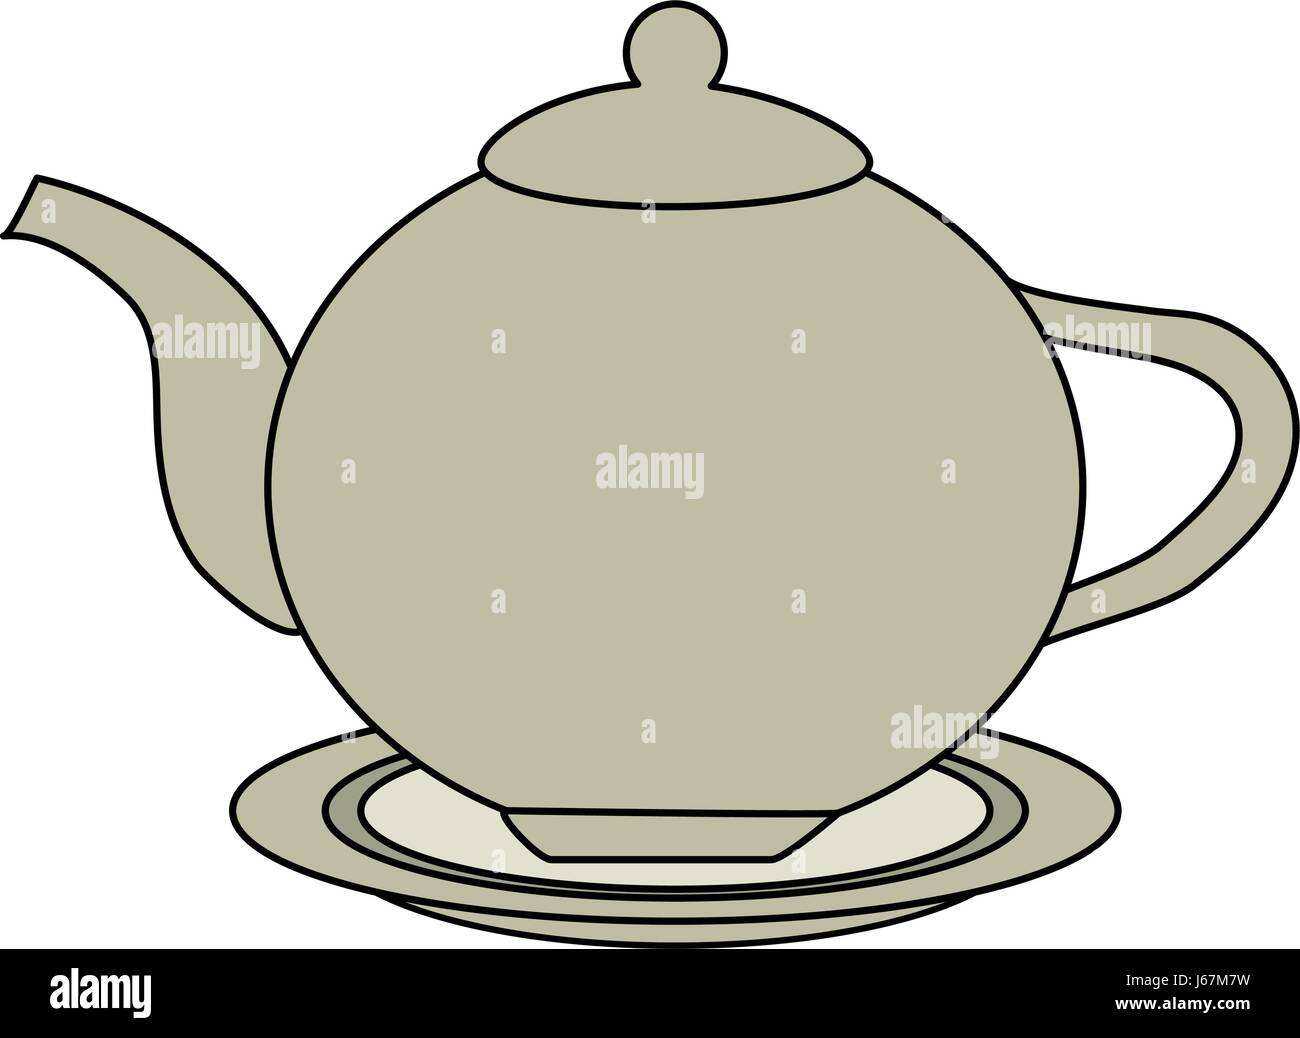 Tea kettle cartoon